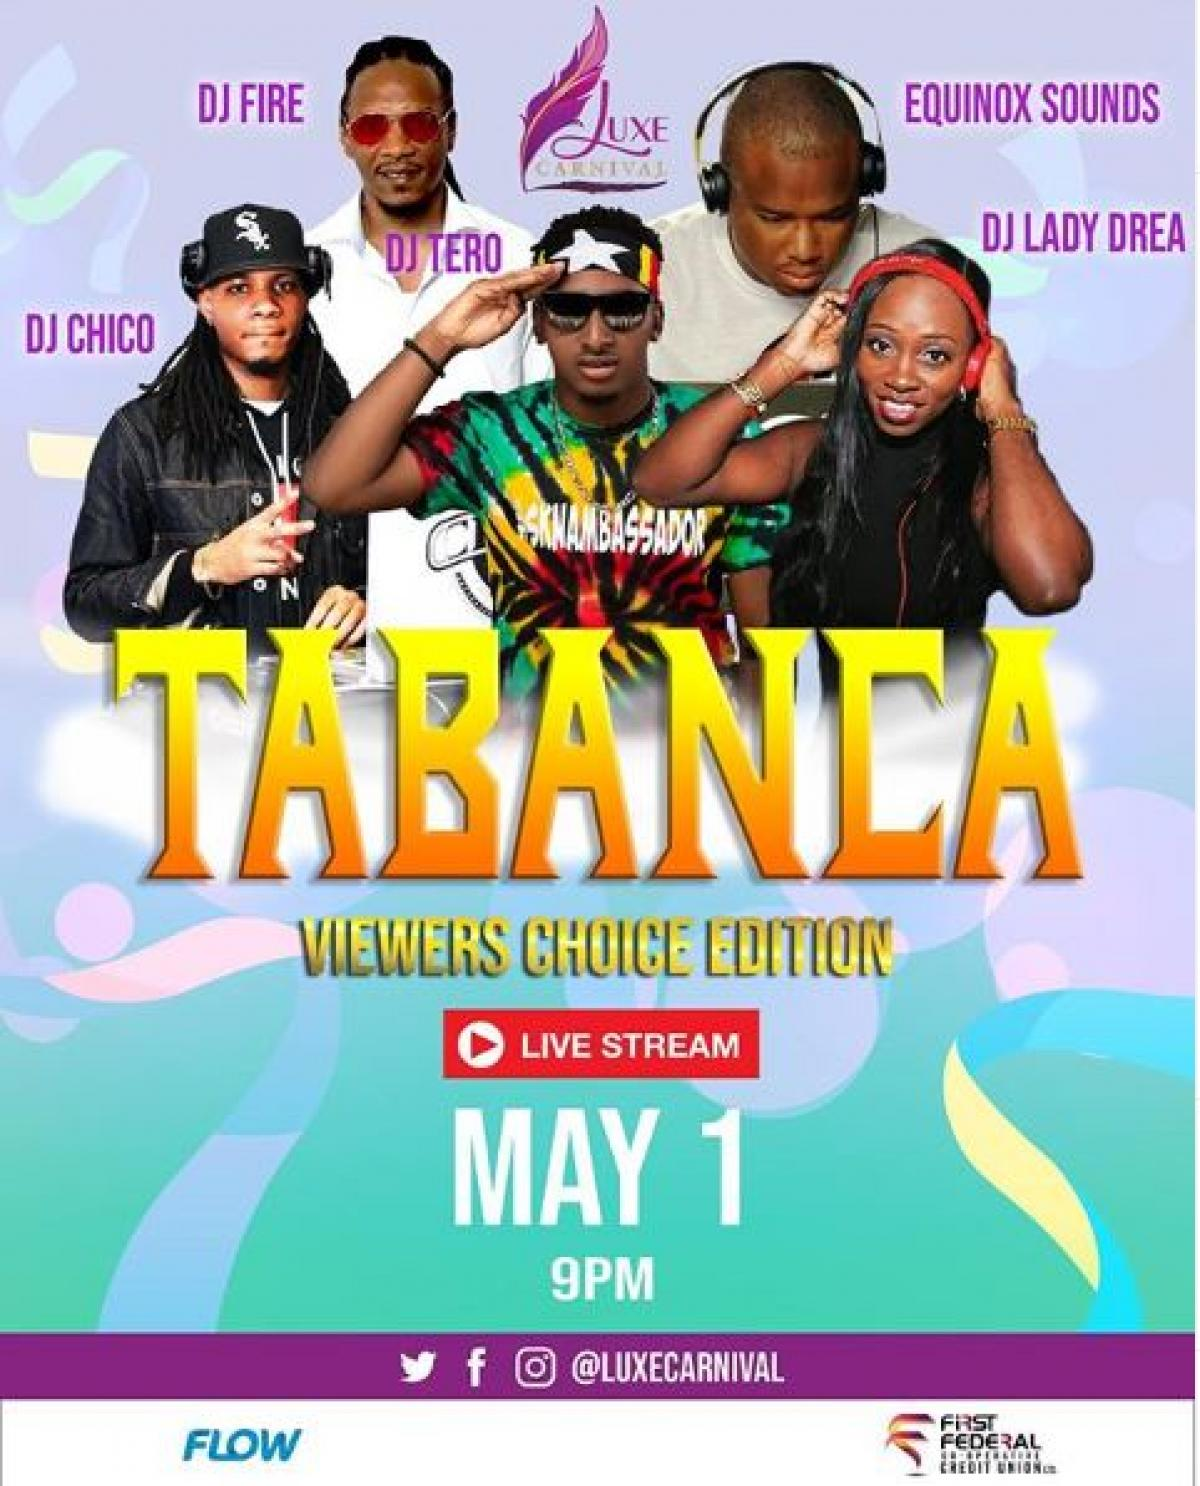 Tabanca flyer or graphic.